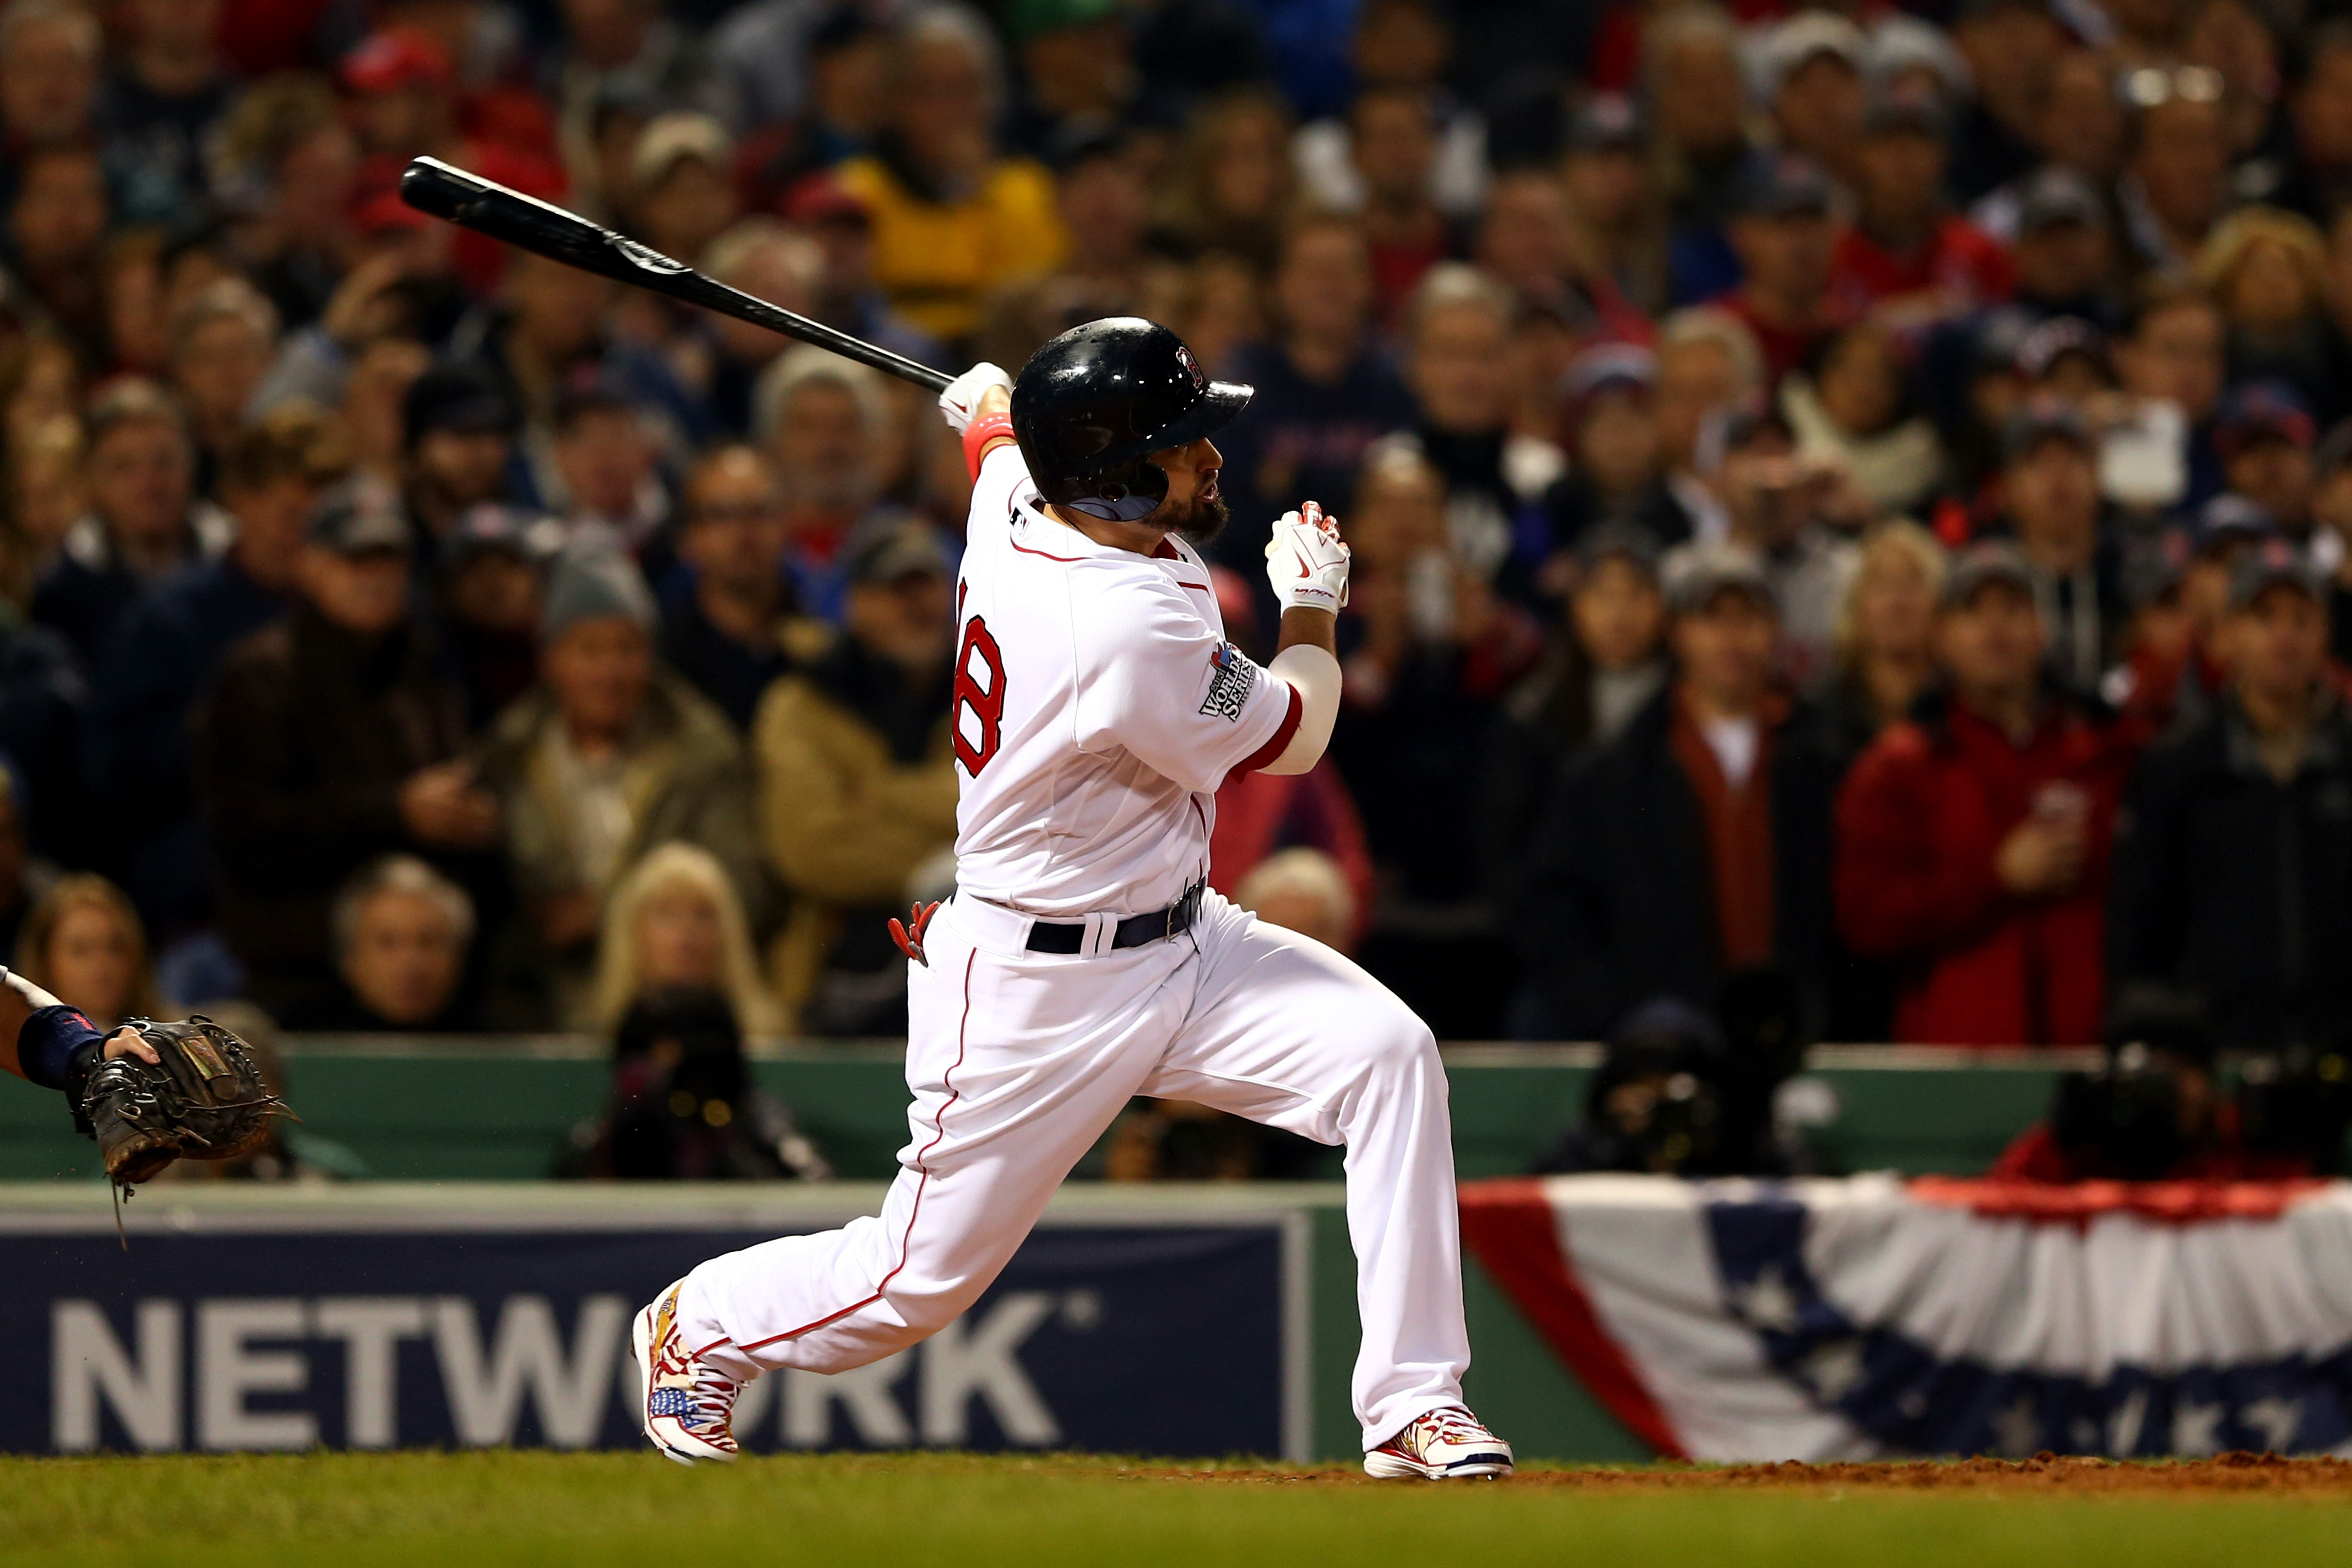 Boston's Shane Victorino strokes a ball high off the Green Monster with the bases loaded in the third, driving in the first three runs of Game Six. The Red Sox defeated the Cardinals, 6-1, to win the World Series 4-2 on Wednesday night.